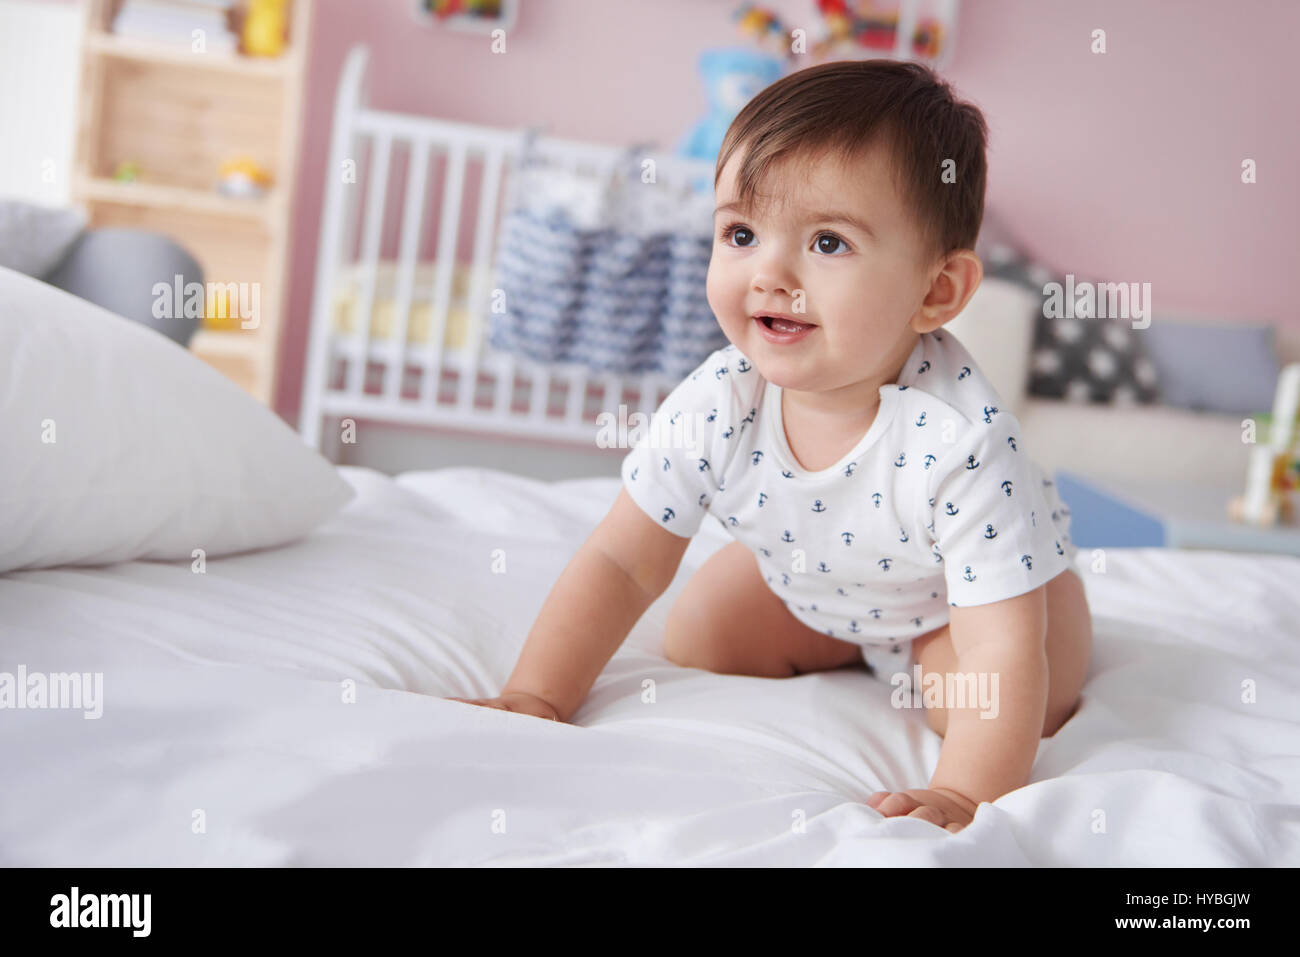 Smiling baby boy crawling on the bed - Stock Image